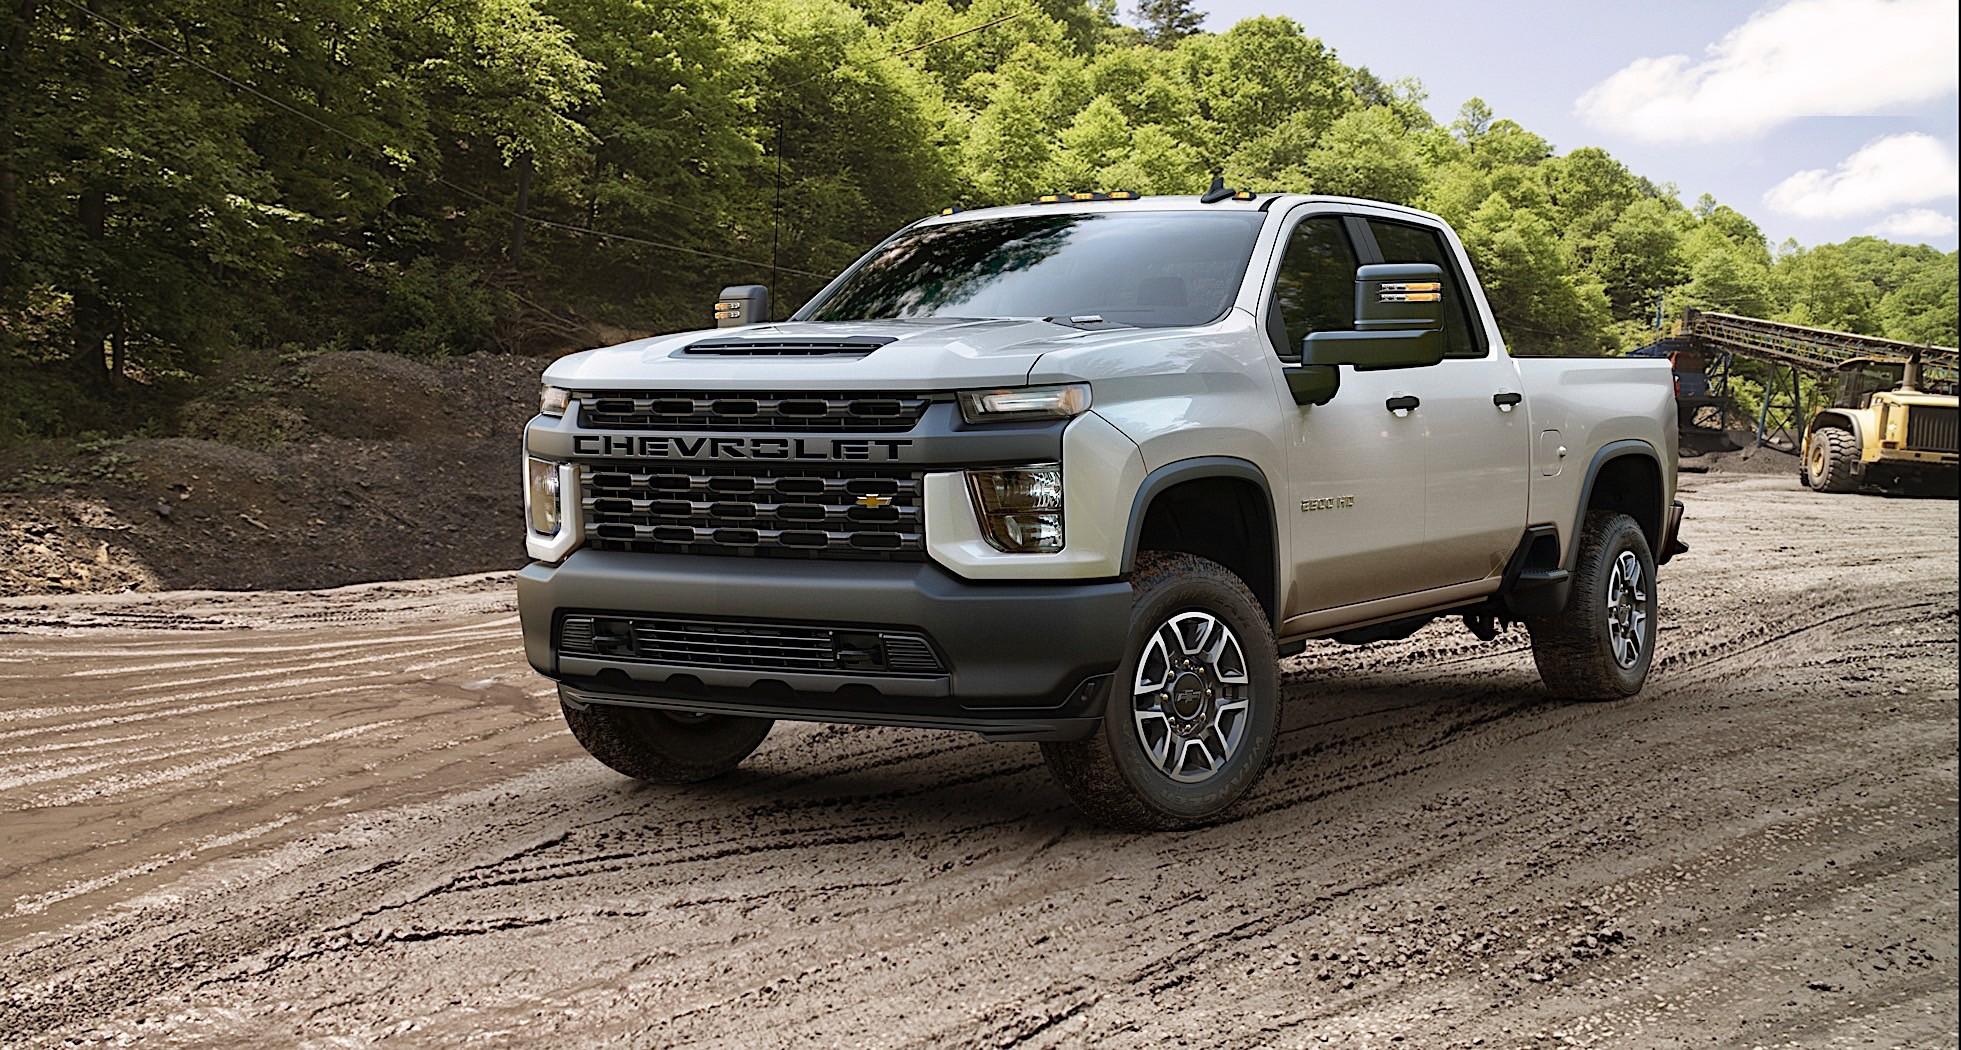 2020 Chevrolet Silverado HD Shows Bad Boy Style in New Gallery - autoevolution